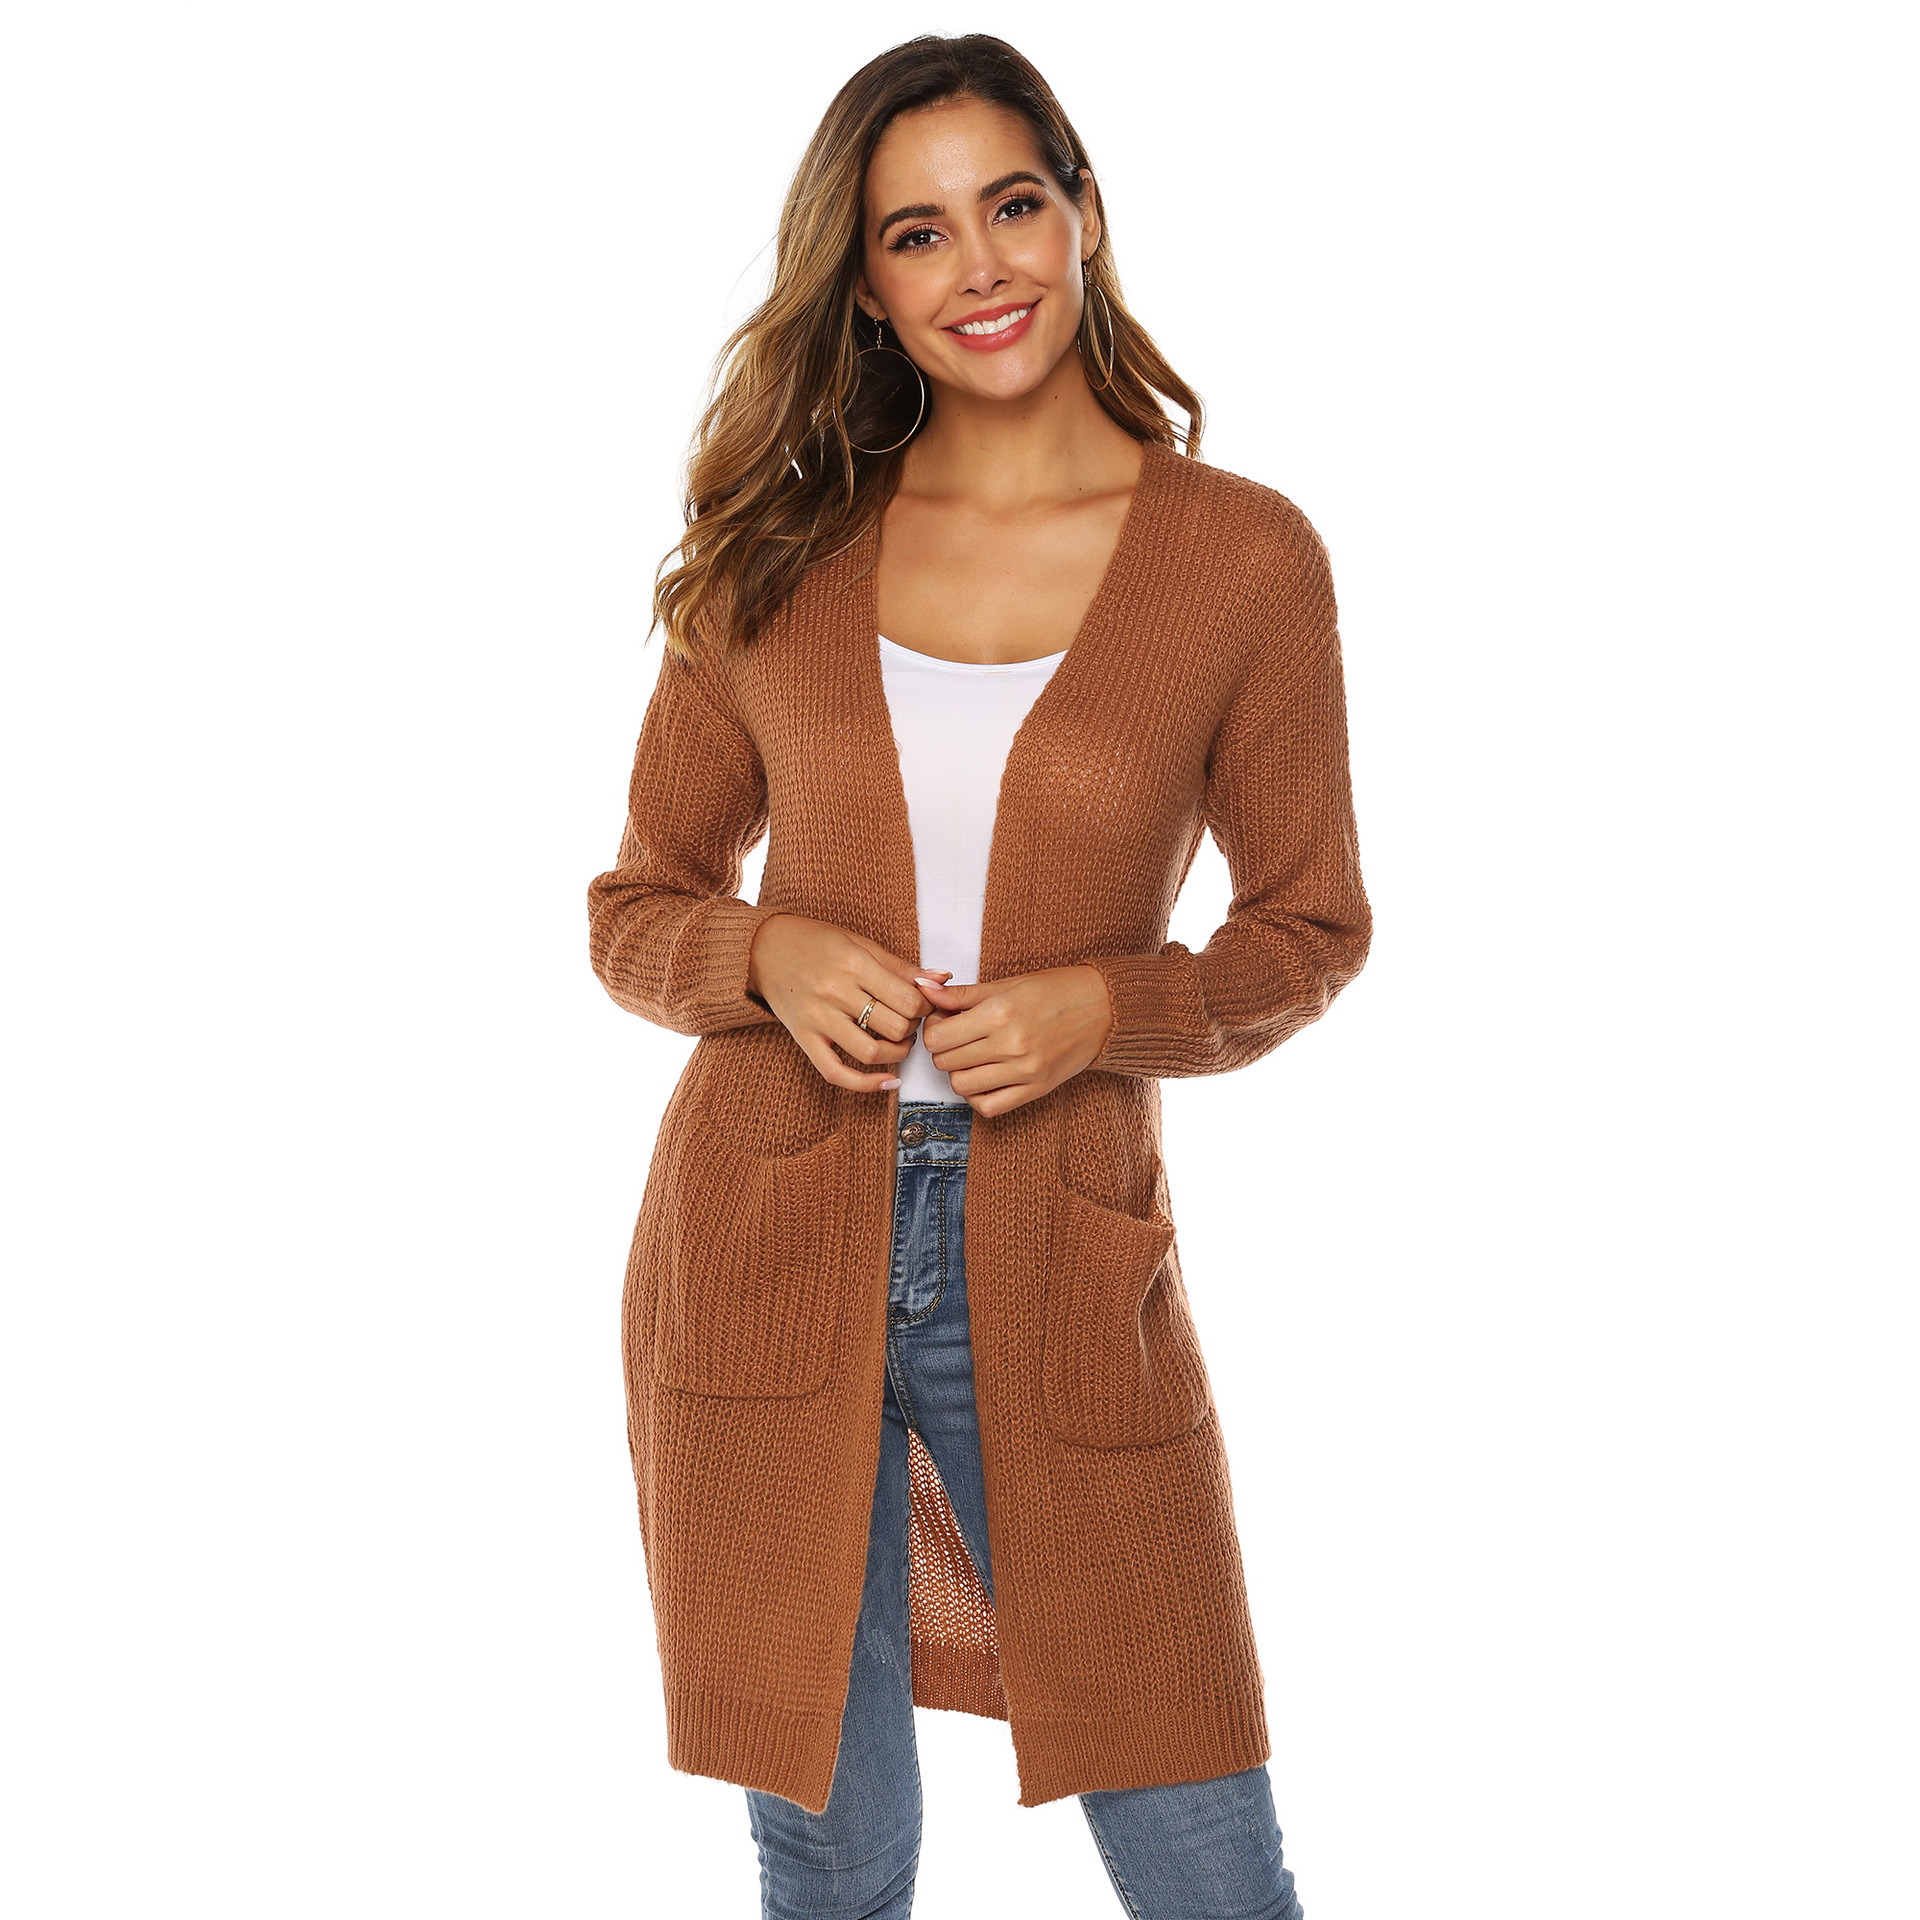 WOMEN'S Autumn And Winter Coat Irregular Solid Color Large Pocket Sweater Cardigan Middle Long Over-the-knee Thin Overcoat